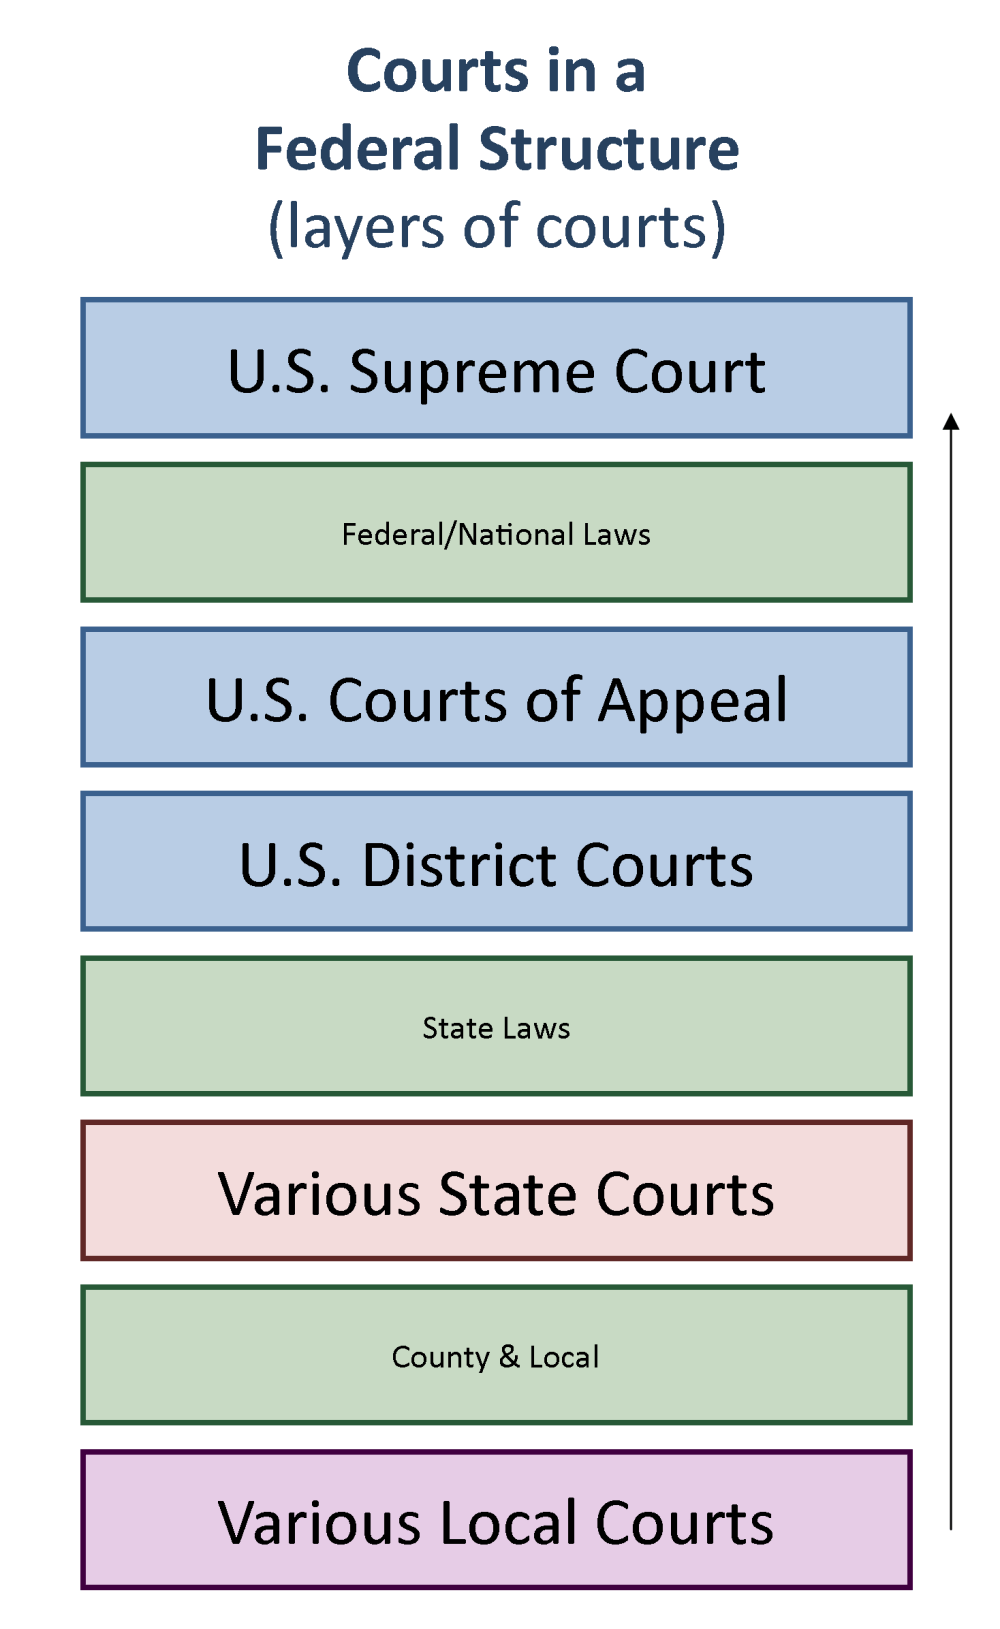 medium resolution of chart showing how courts are structure vertically from local at the bottom to the supreme court